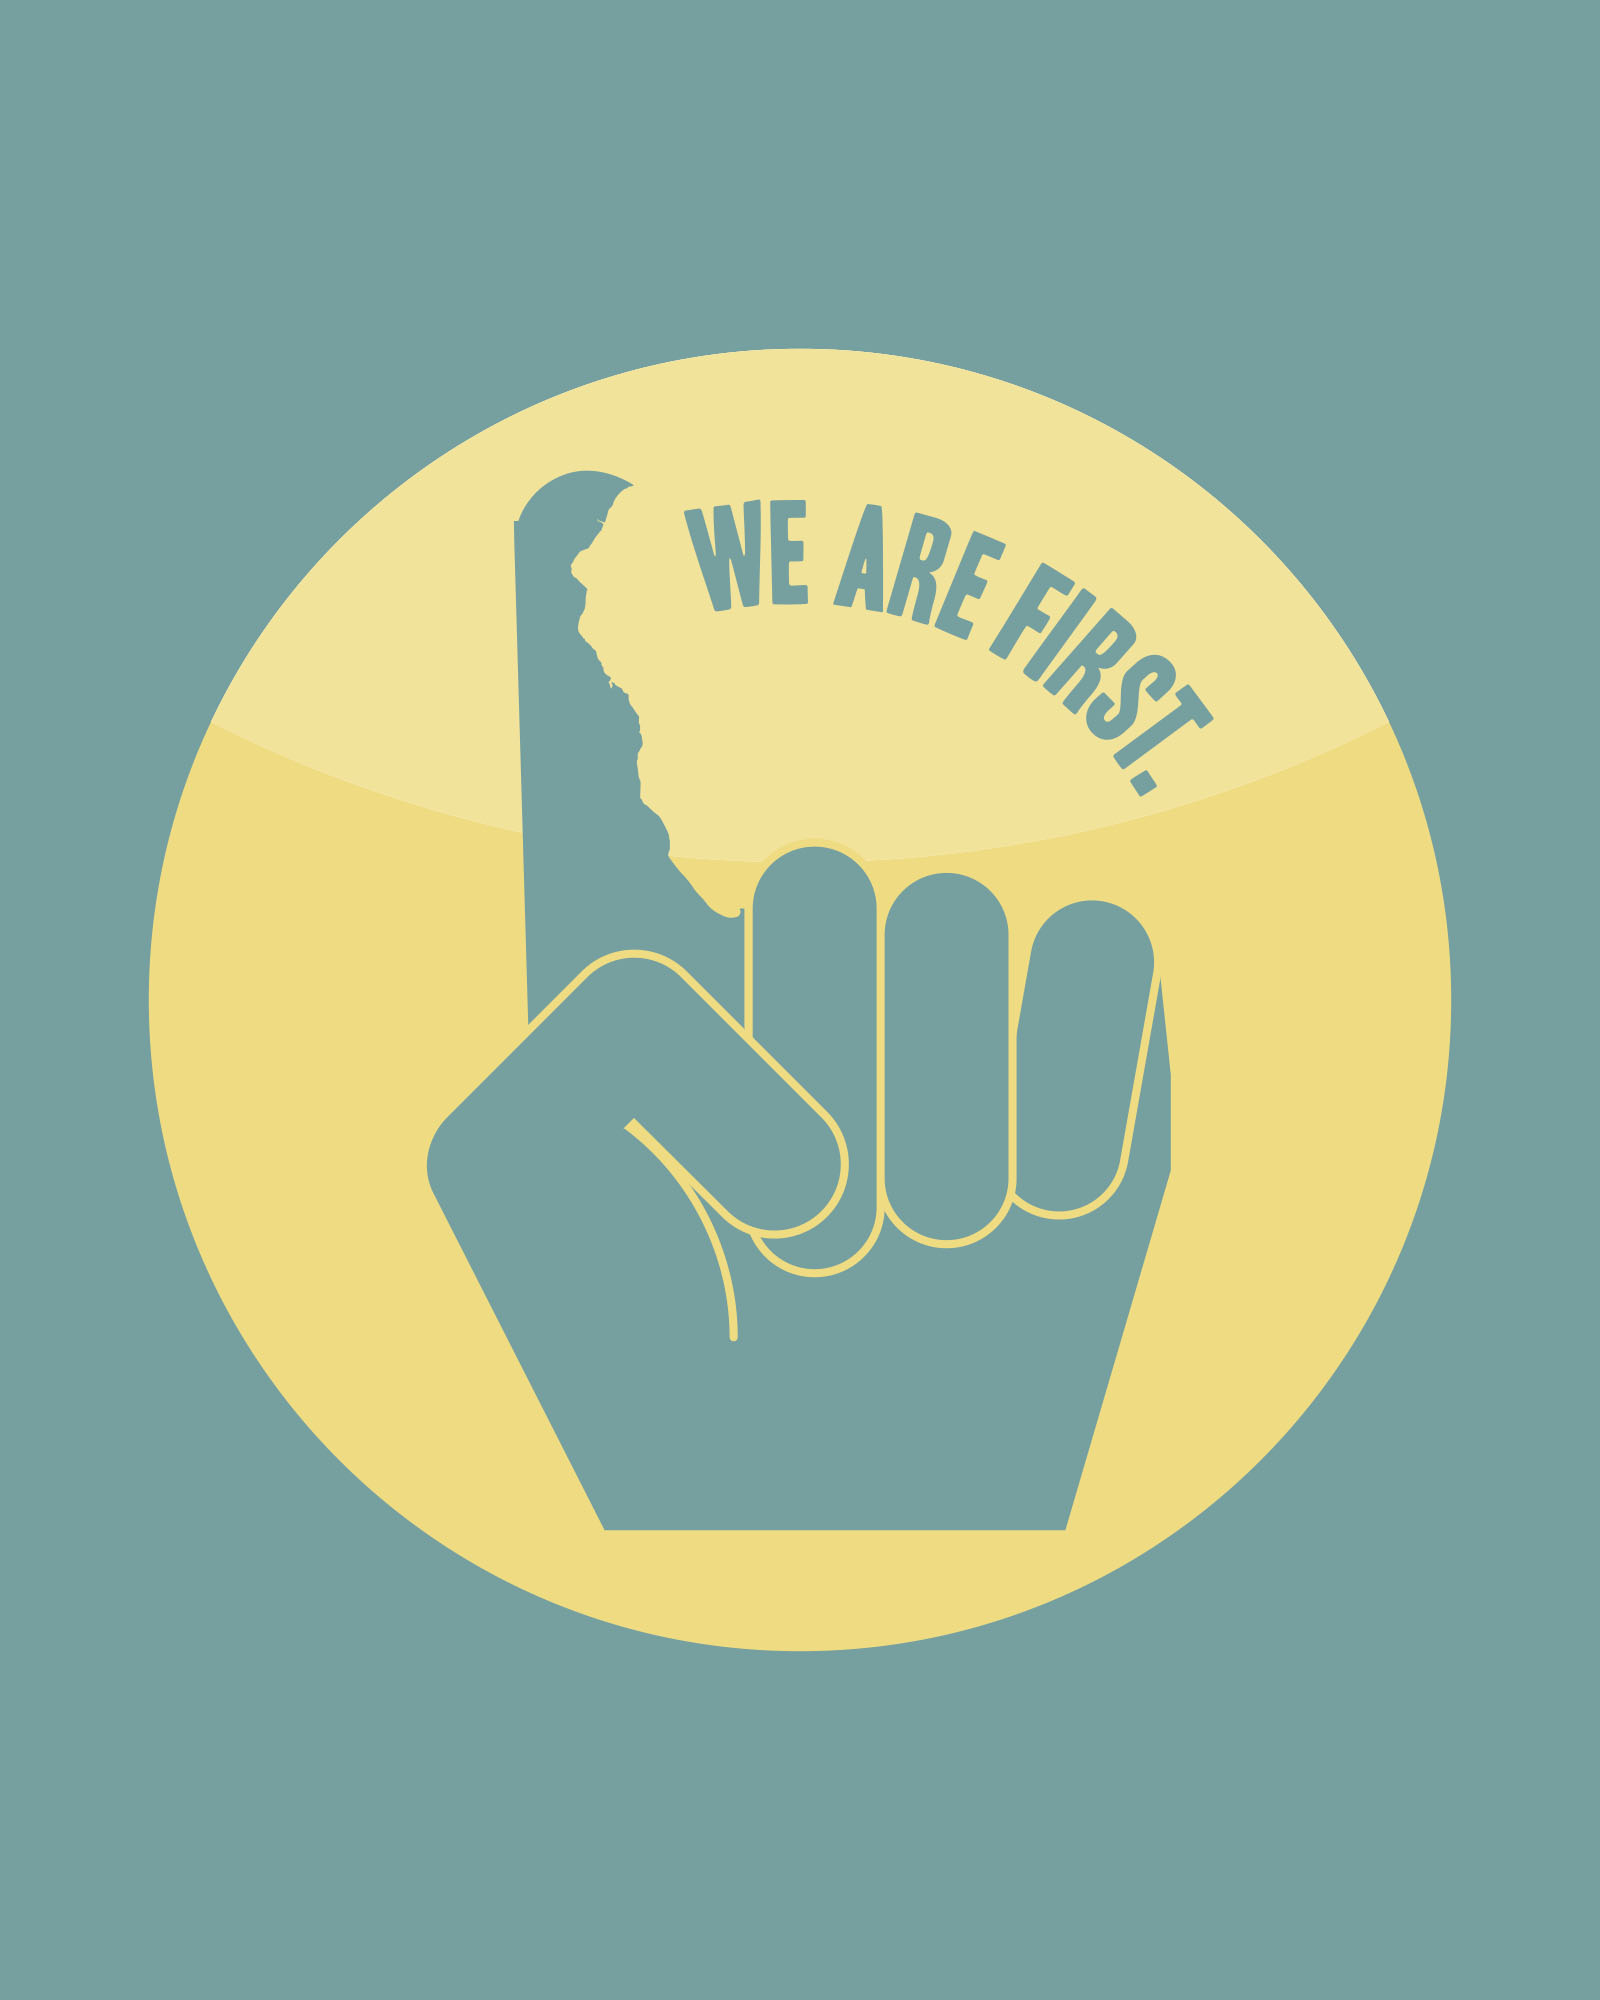 We Are First_8x10.jpg